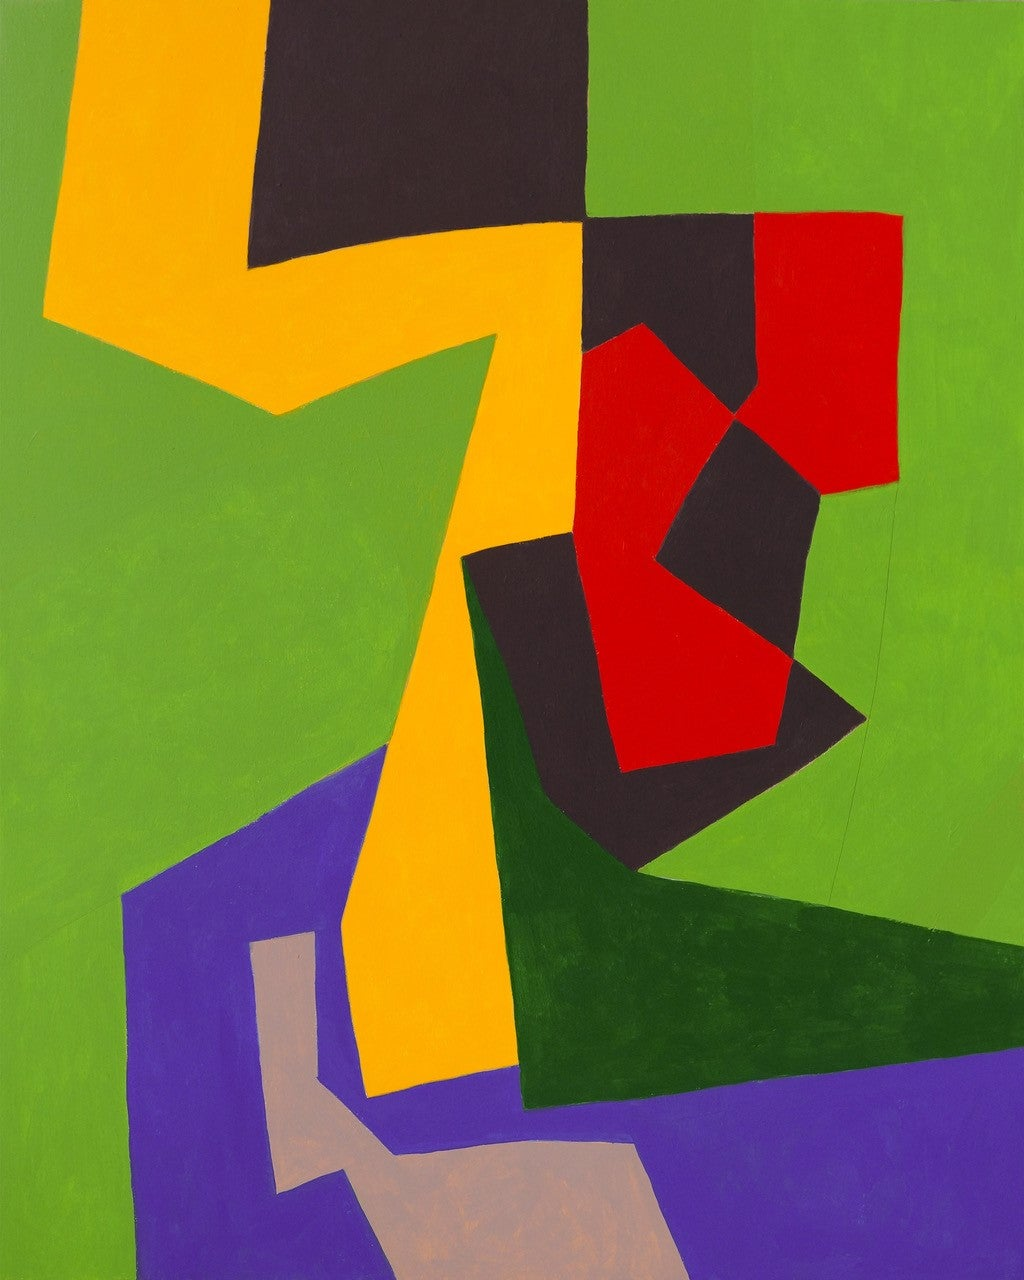 Dactyl (Contemporary Abstract Painting in Yellow, Green, Red, Purple & Black)